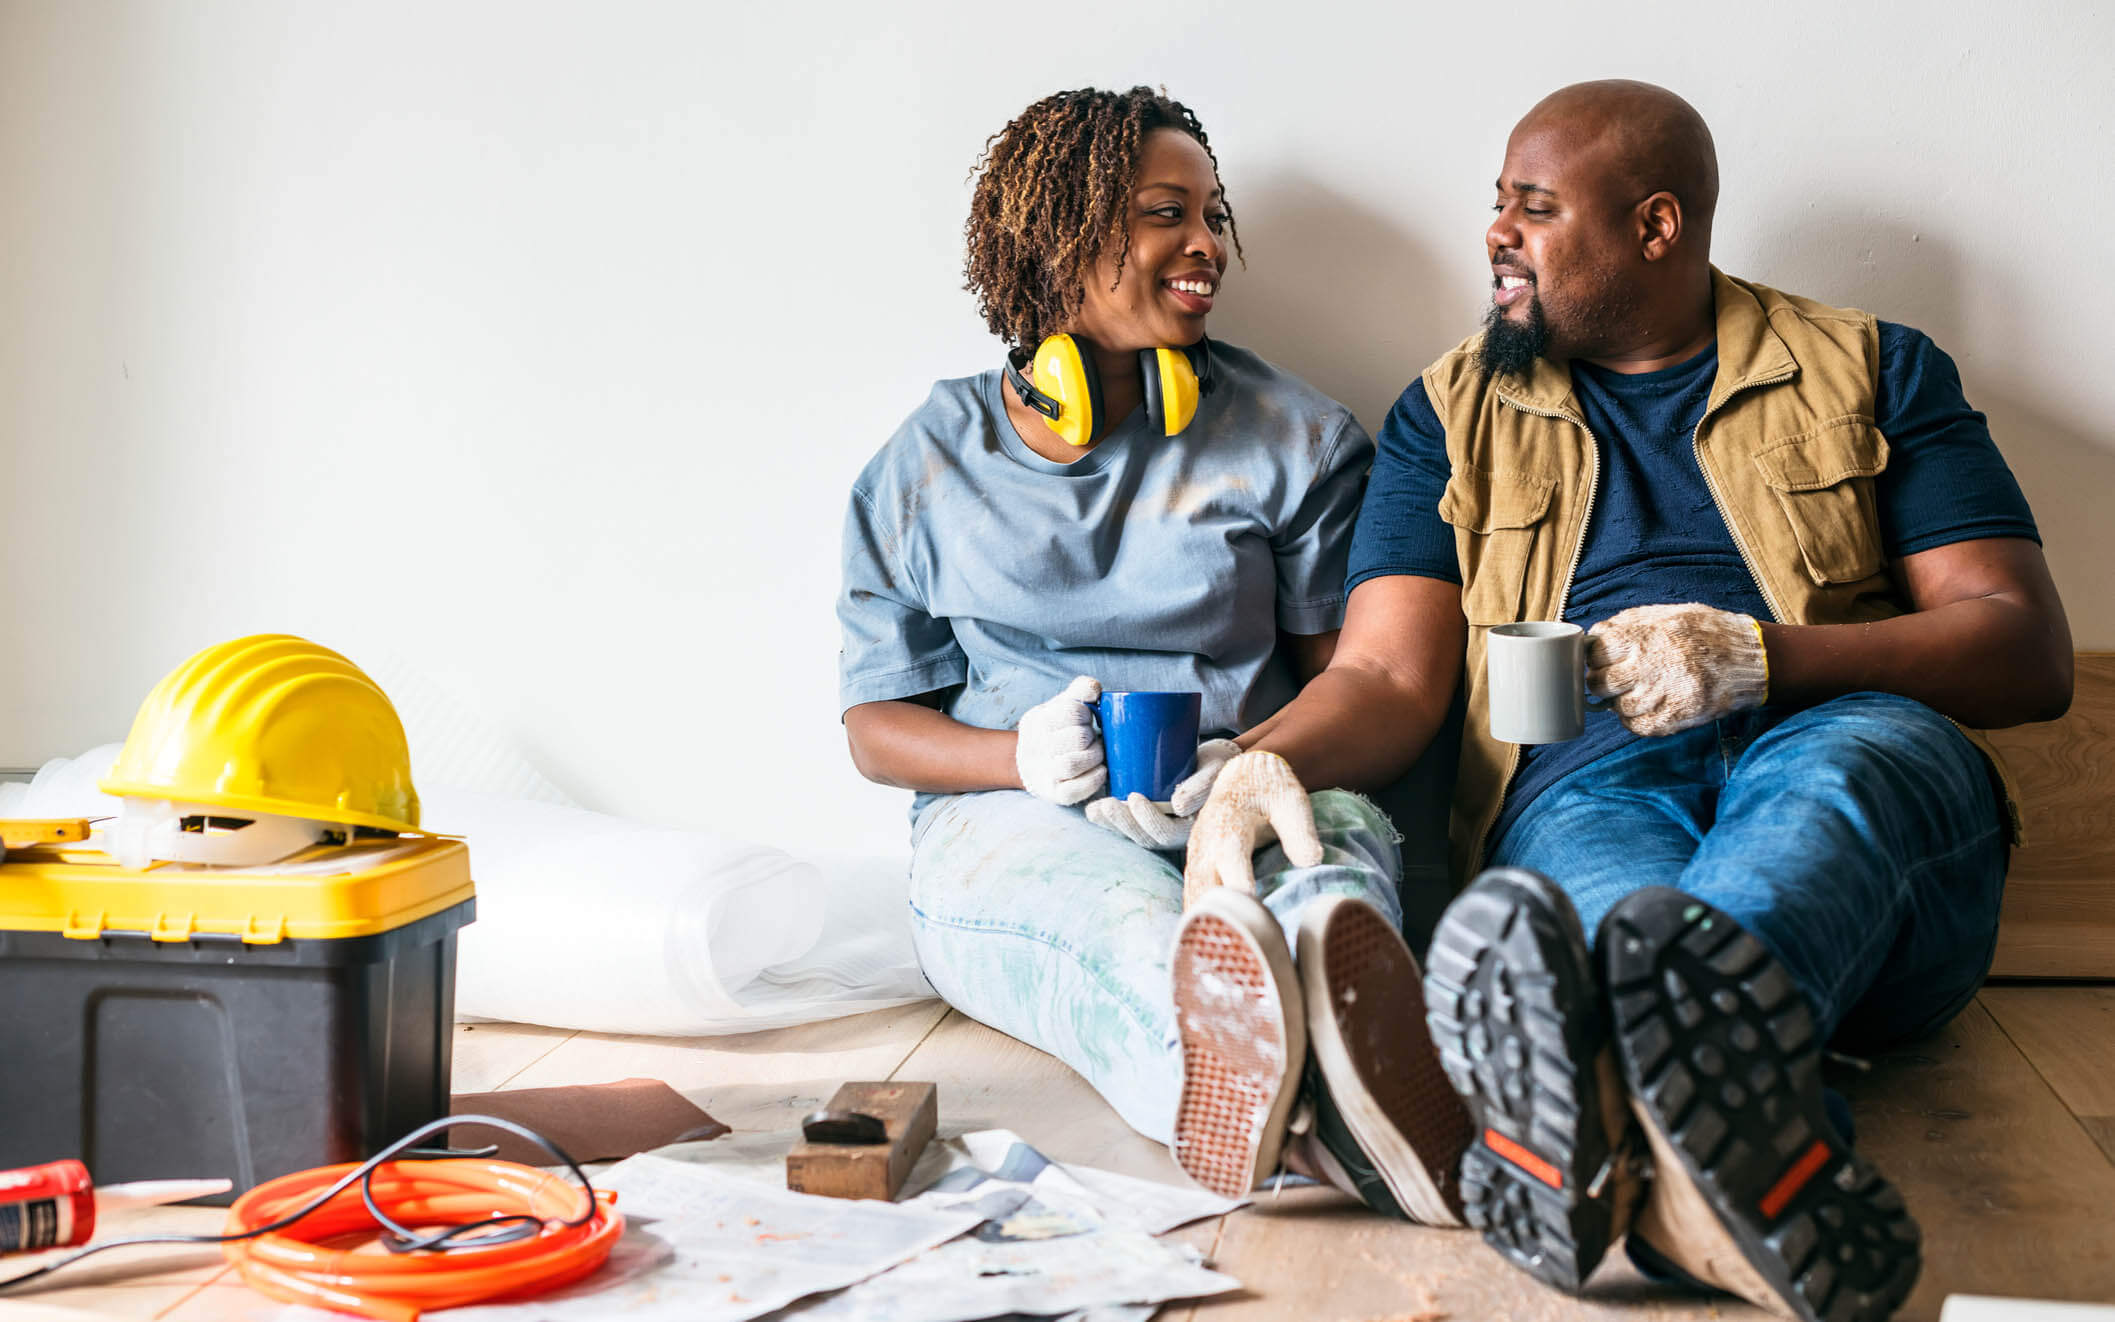 Home Improvement Projects: DIY or Hire a Professional?